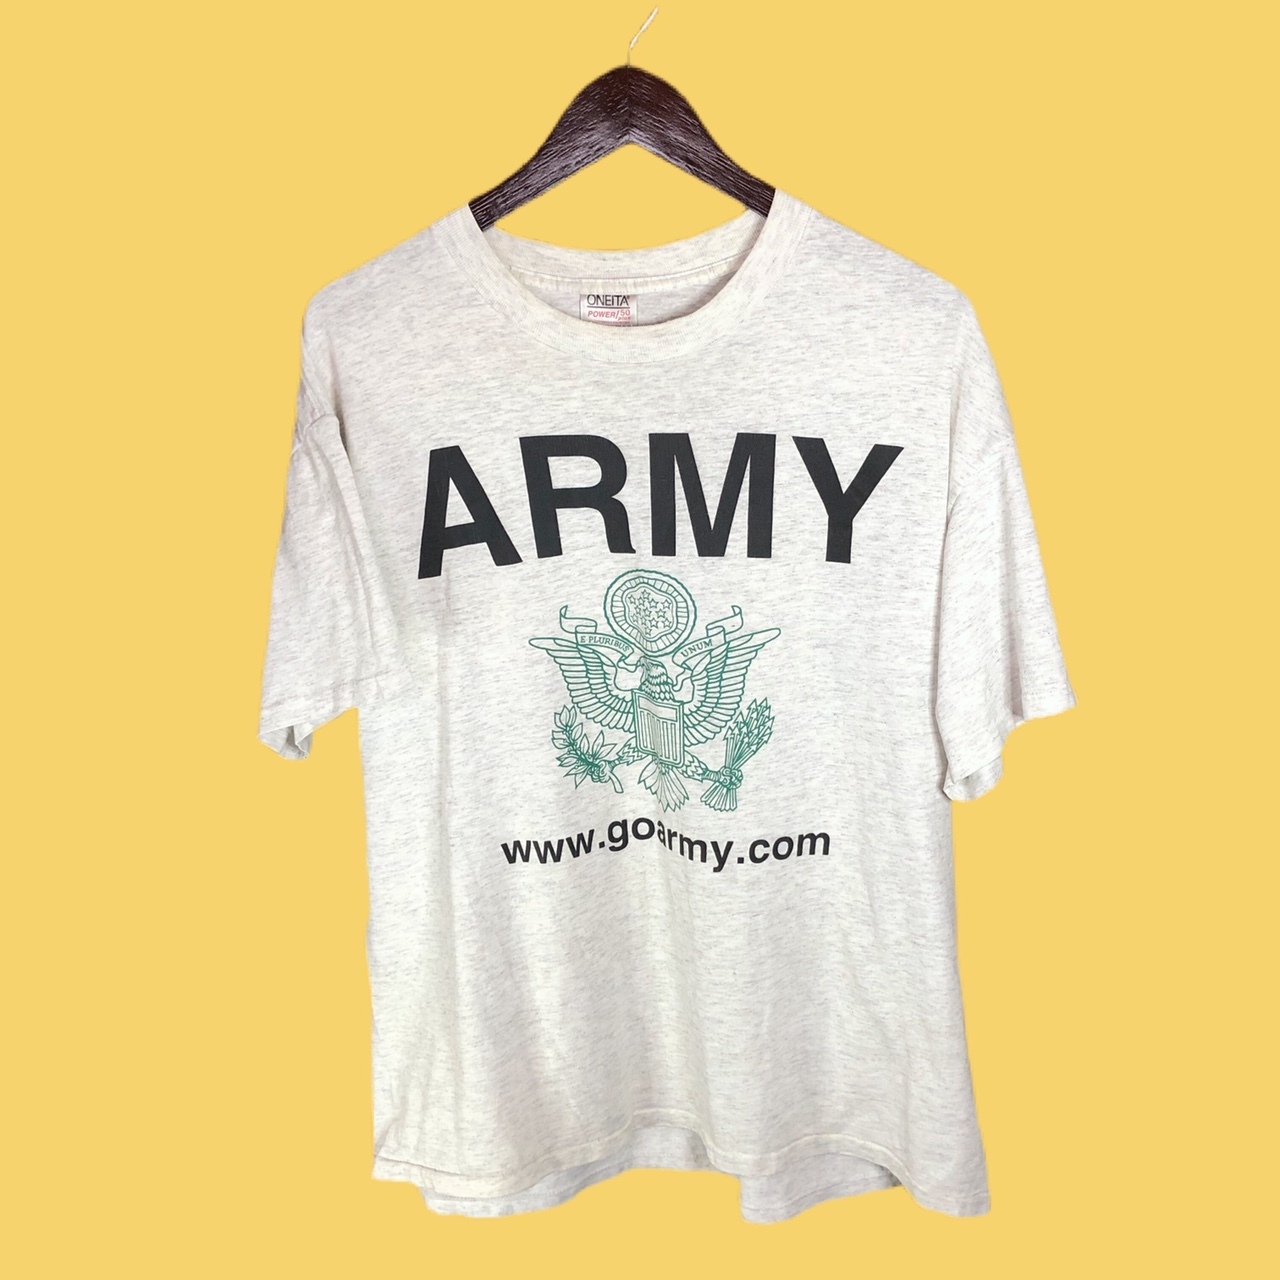 Product Image 1 - vintage 90s army spellout tee